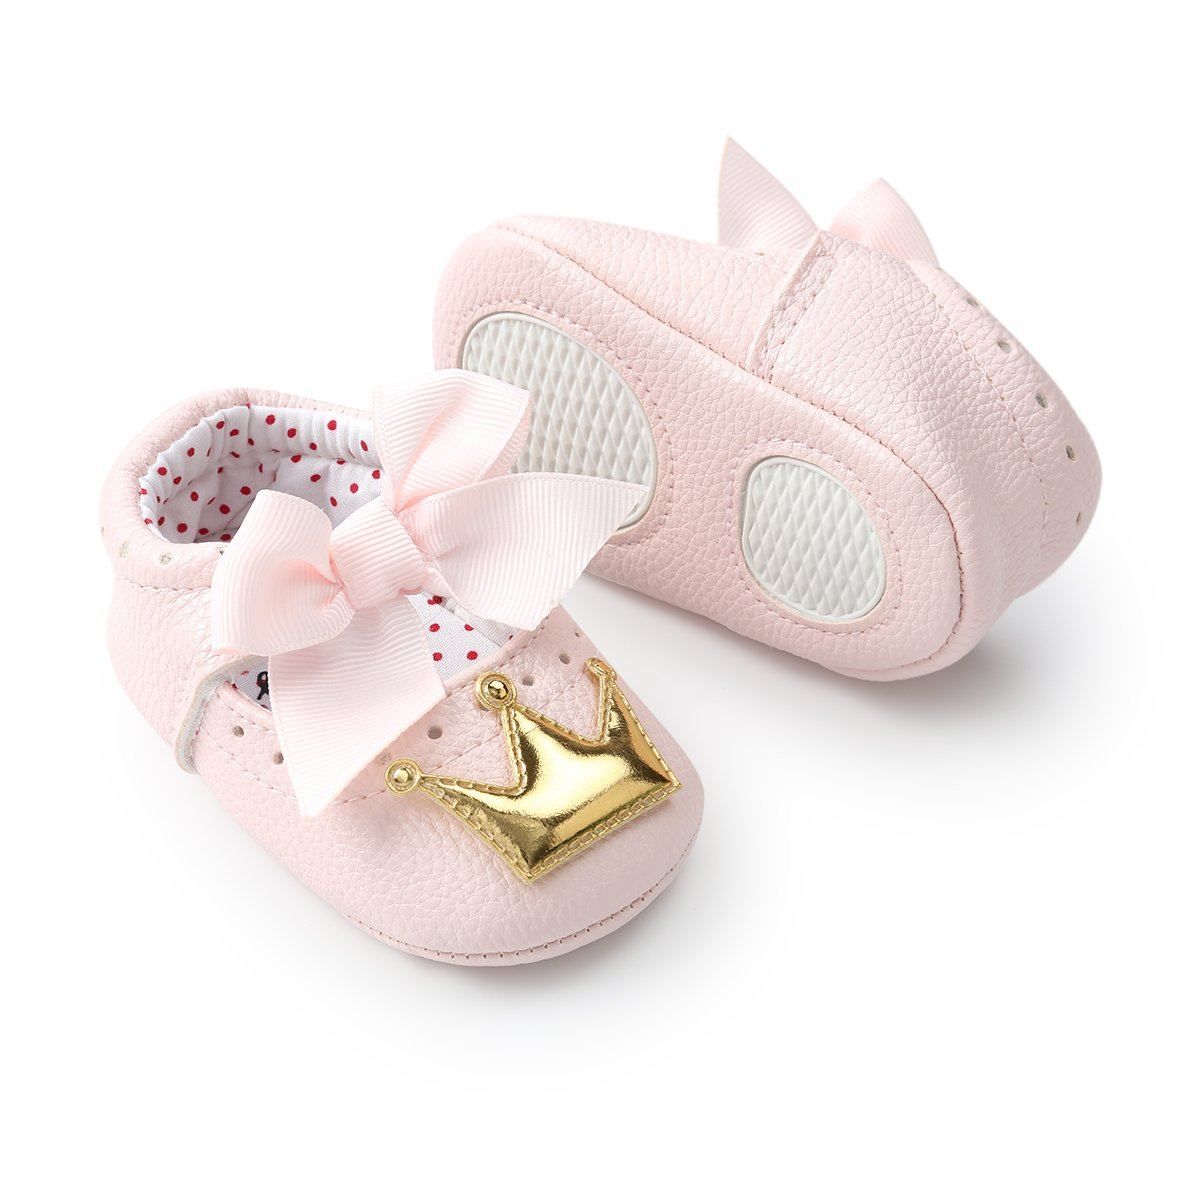 Infant Toddler Girls Birthday Shoes Soft Sole Anti-Slip Party Dress Shoes Prewalker with Crown Headband